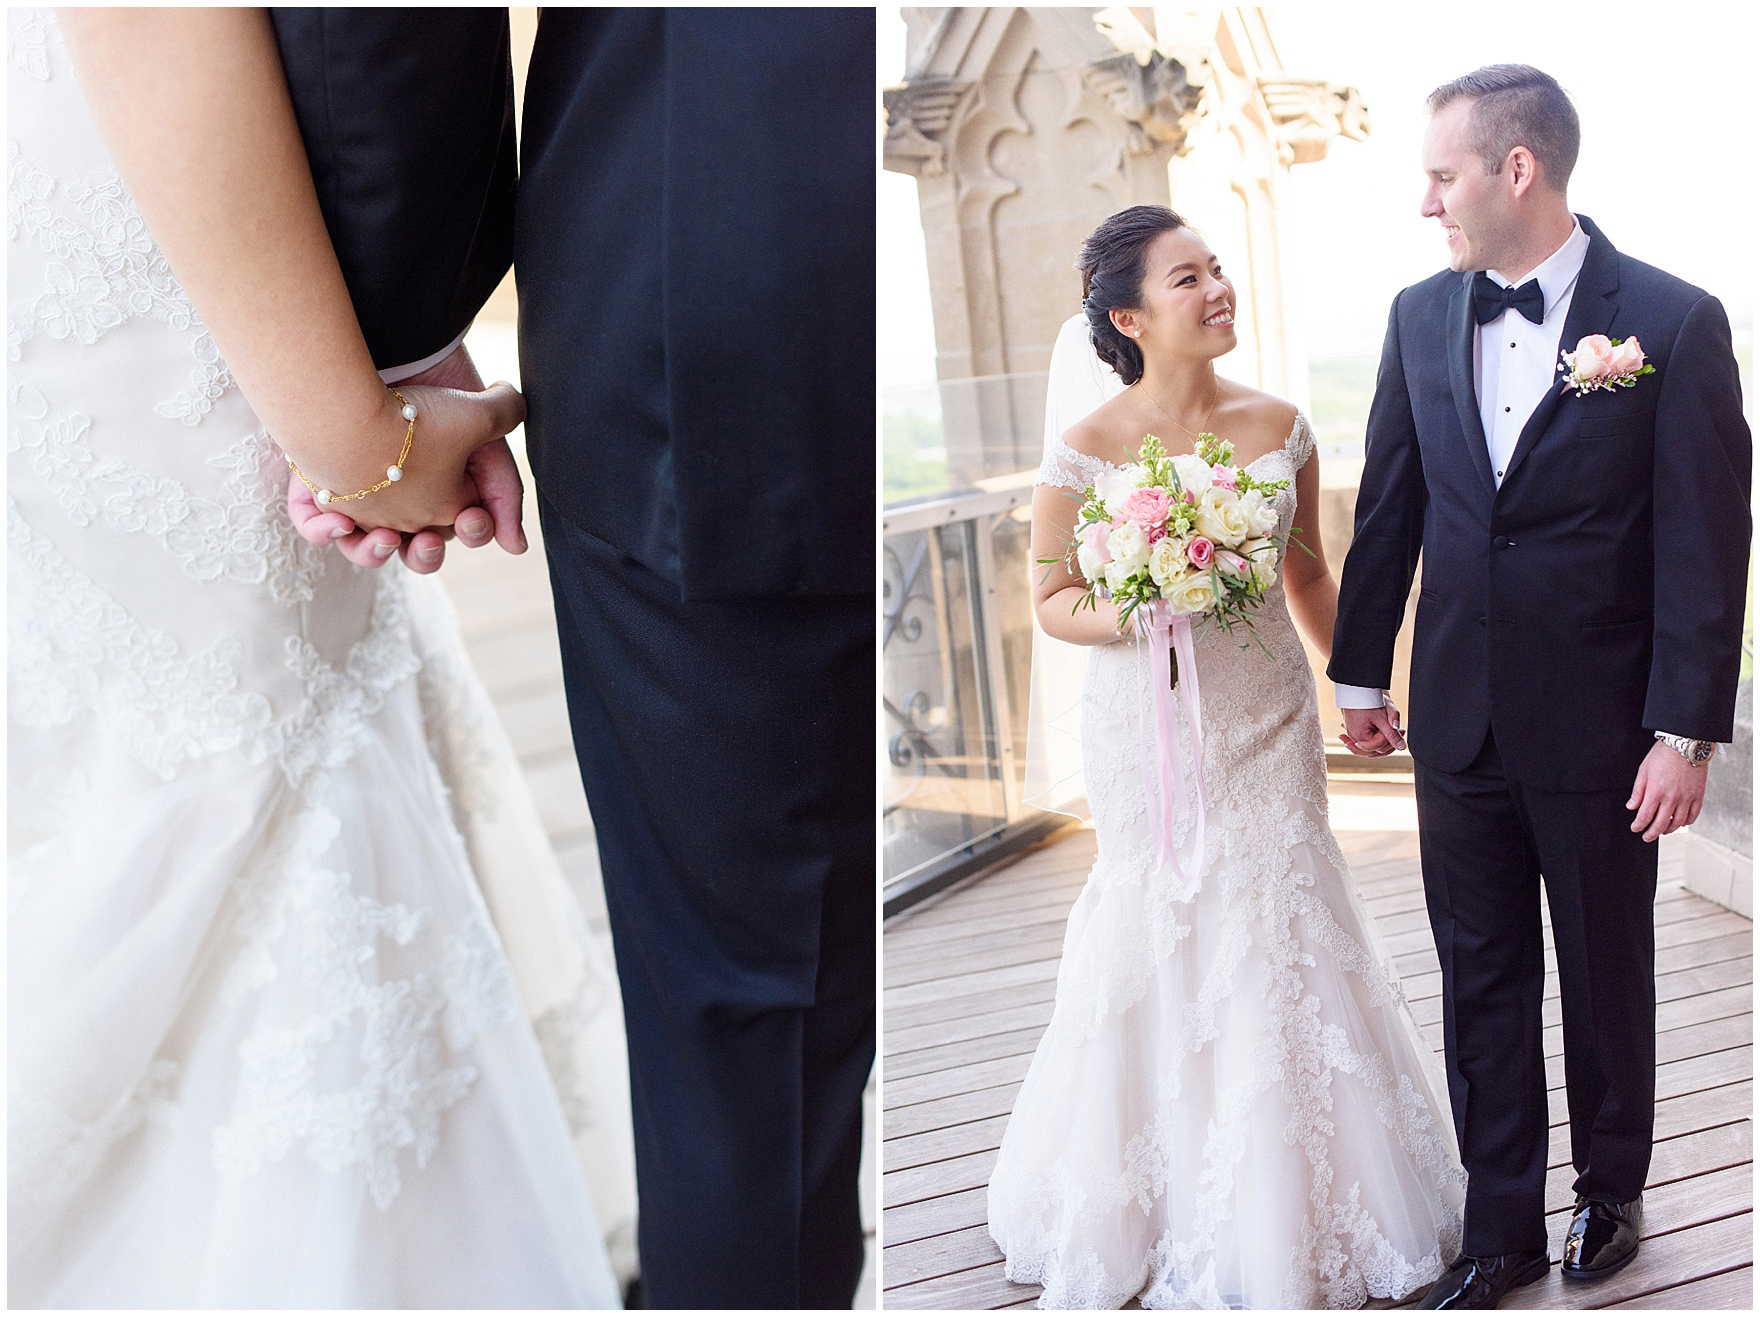 The bride and groom hold hands before their University Club of Chicago wedding.